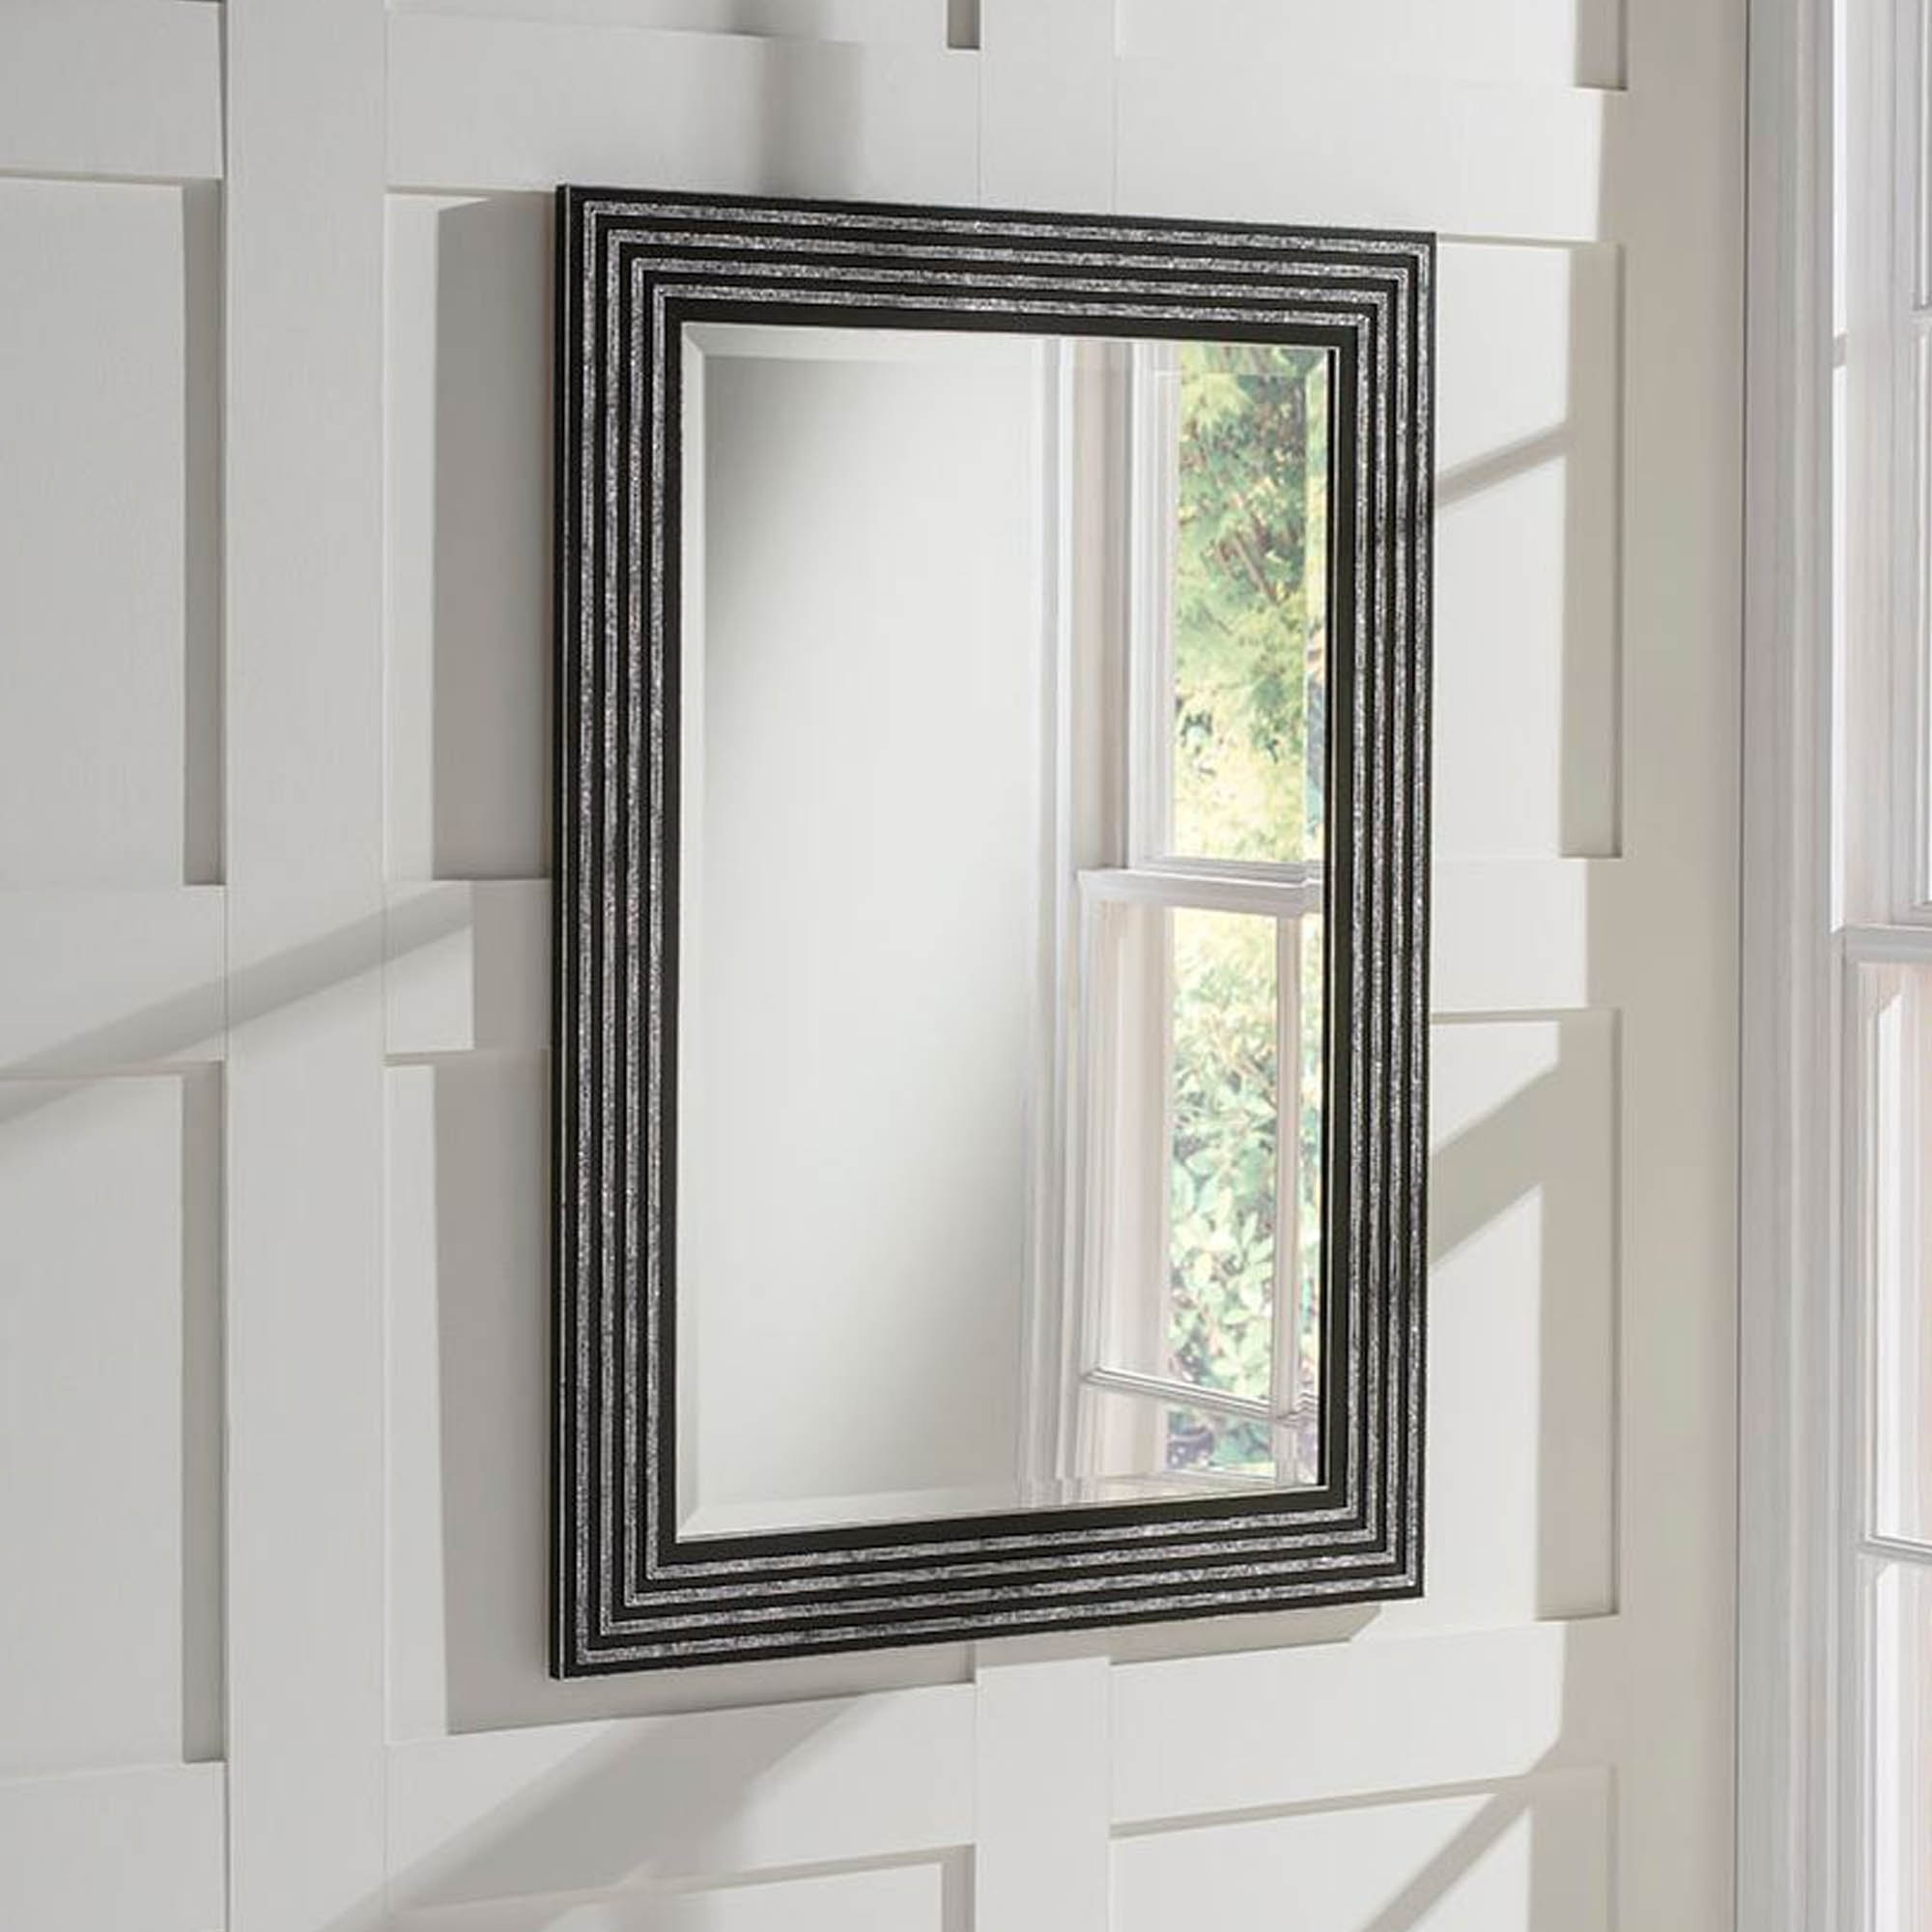 Widely Used Decorative Black Wall Mirrors Regarding Black And Silver Decorative Wall Mirror (View 5 of 20)